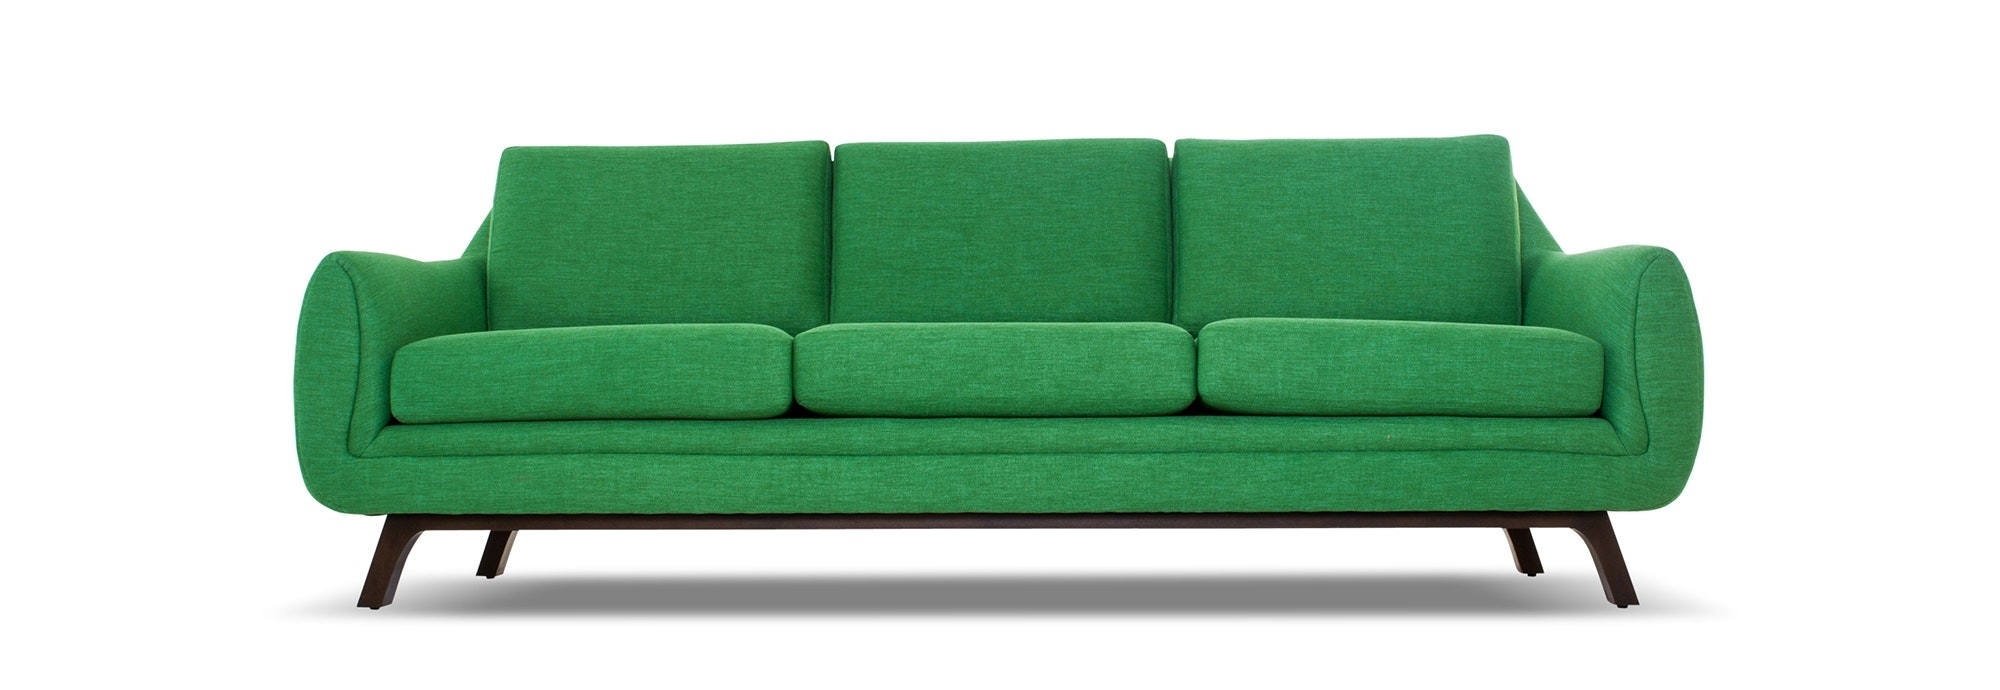 Joybird With Regard To Favorite Sectional Sofas At Buffalo Ny (View 12 of 20)